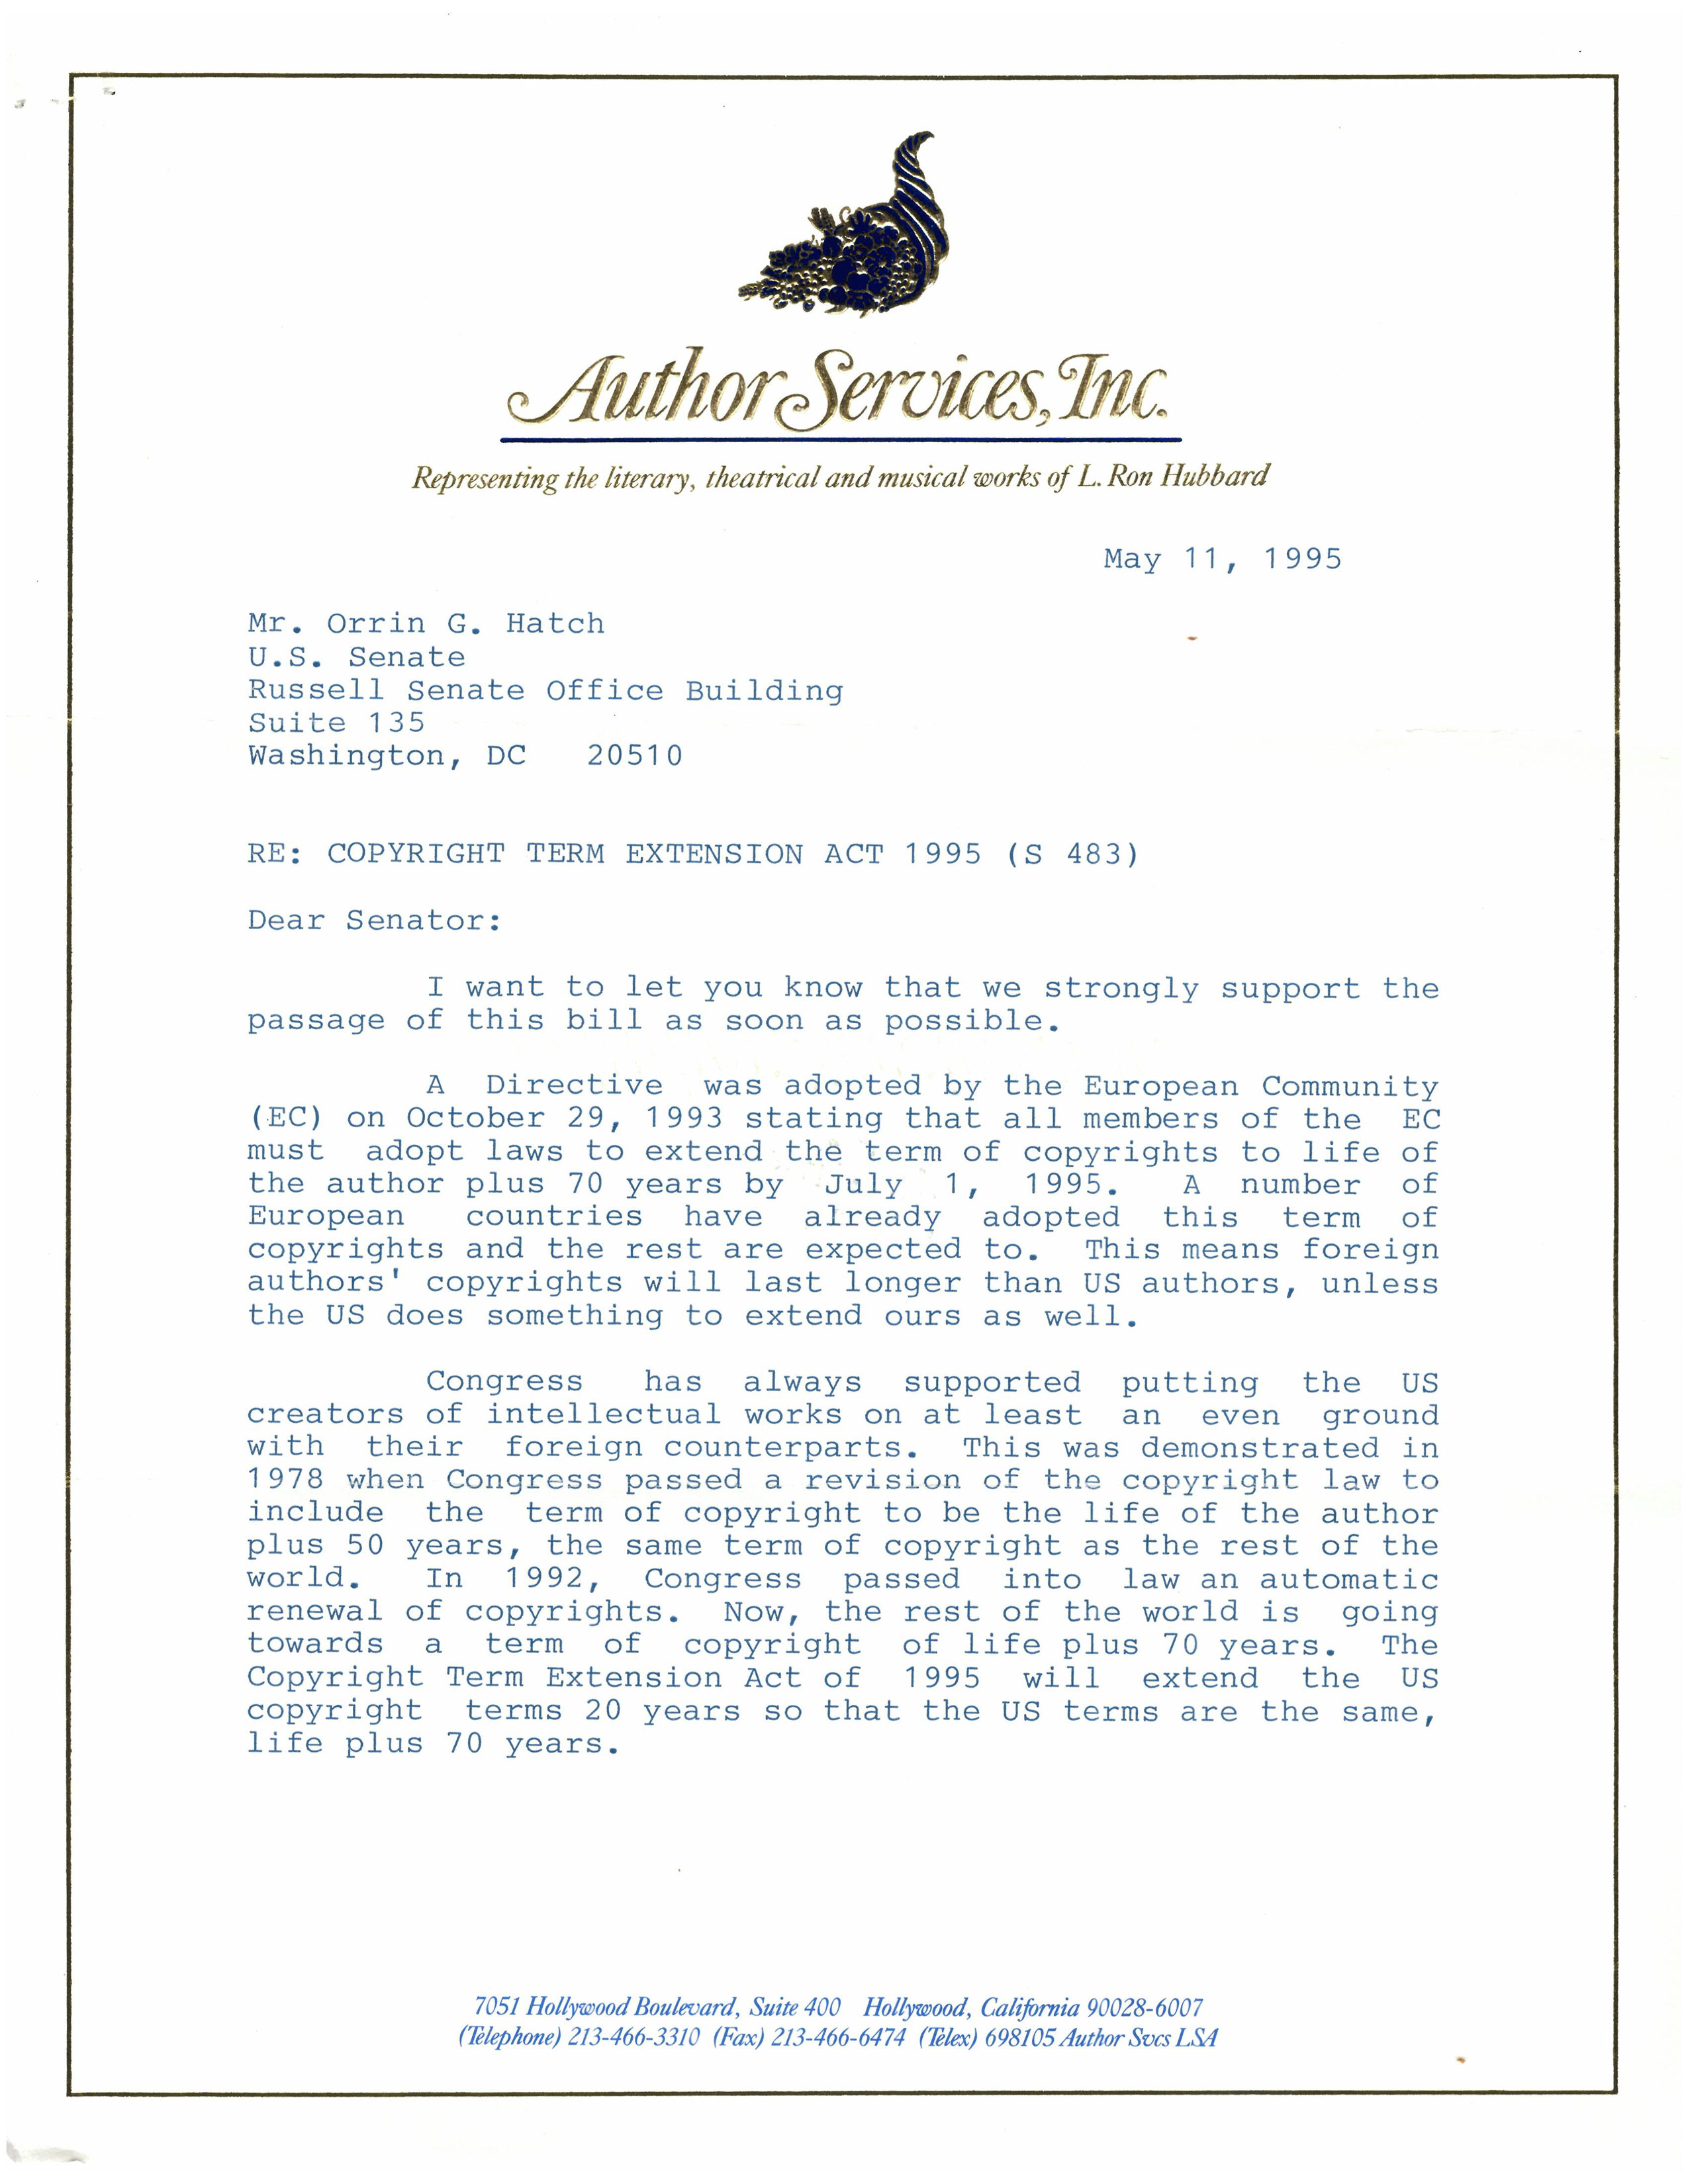 Letter from the estate of L Ron Hubbard to Senator Orrin G. Hatch regarding the Copyright Term Extension Act, May 11, 1995, page 1. (Records of the U.S. Senate, National Archives)